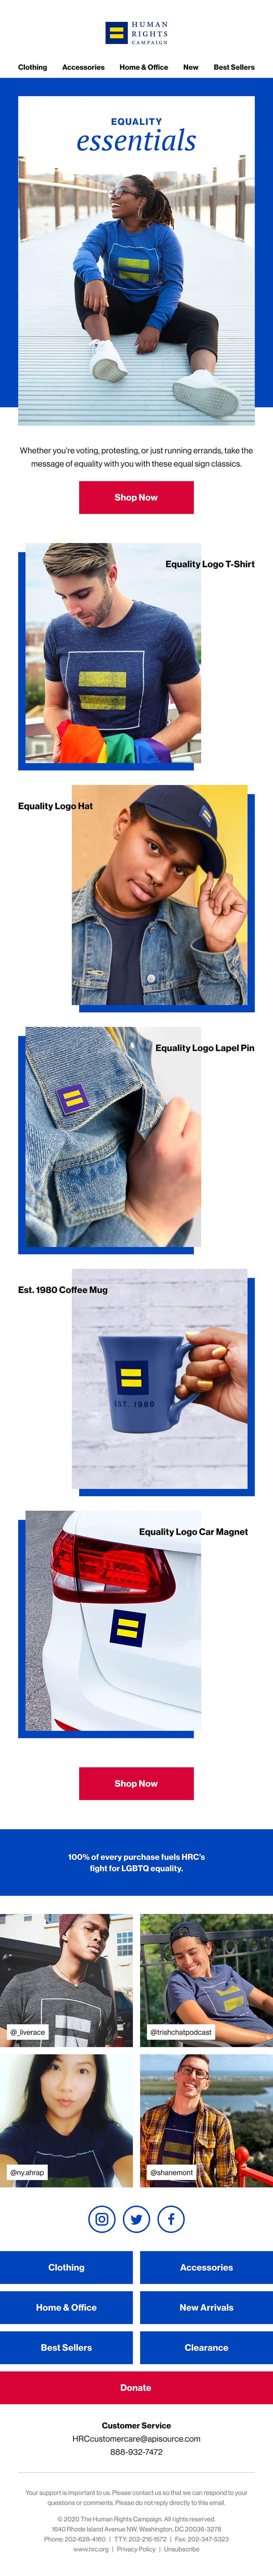 An email newsletter promoting merchandise featuring HRC's equal sign logo.